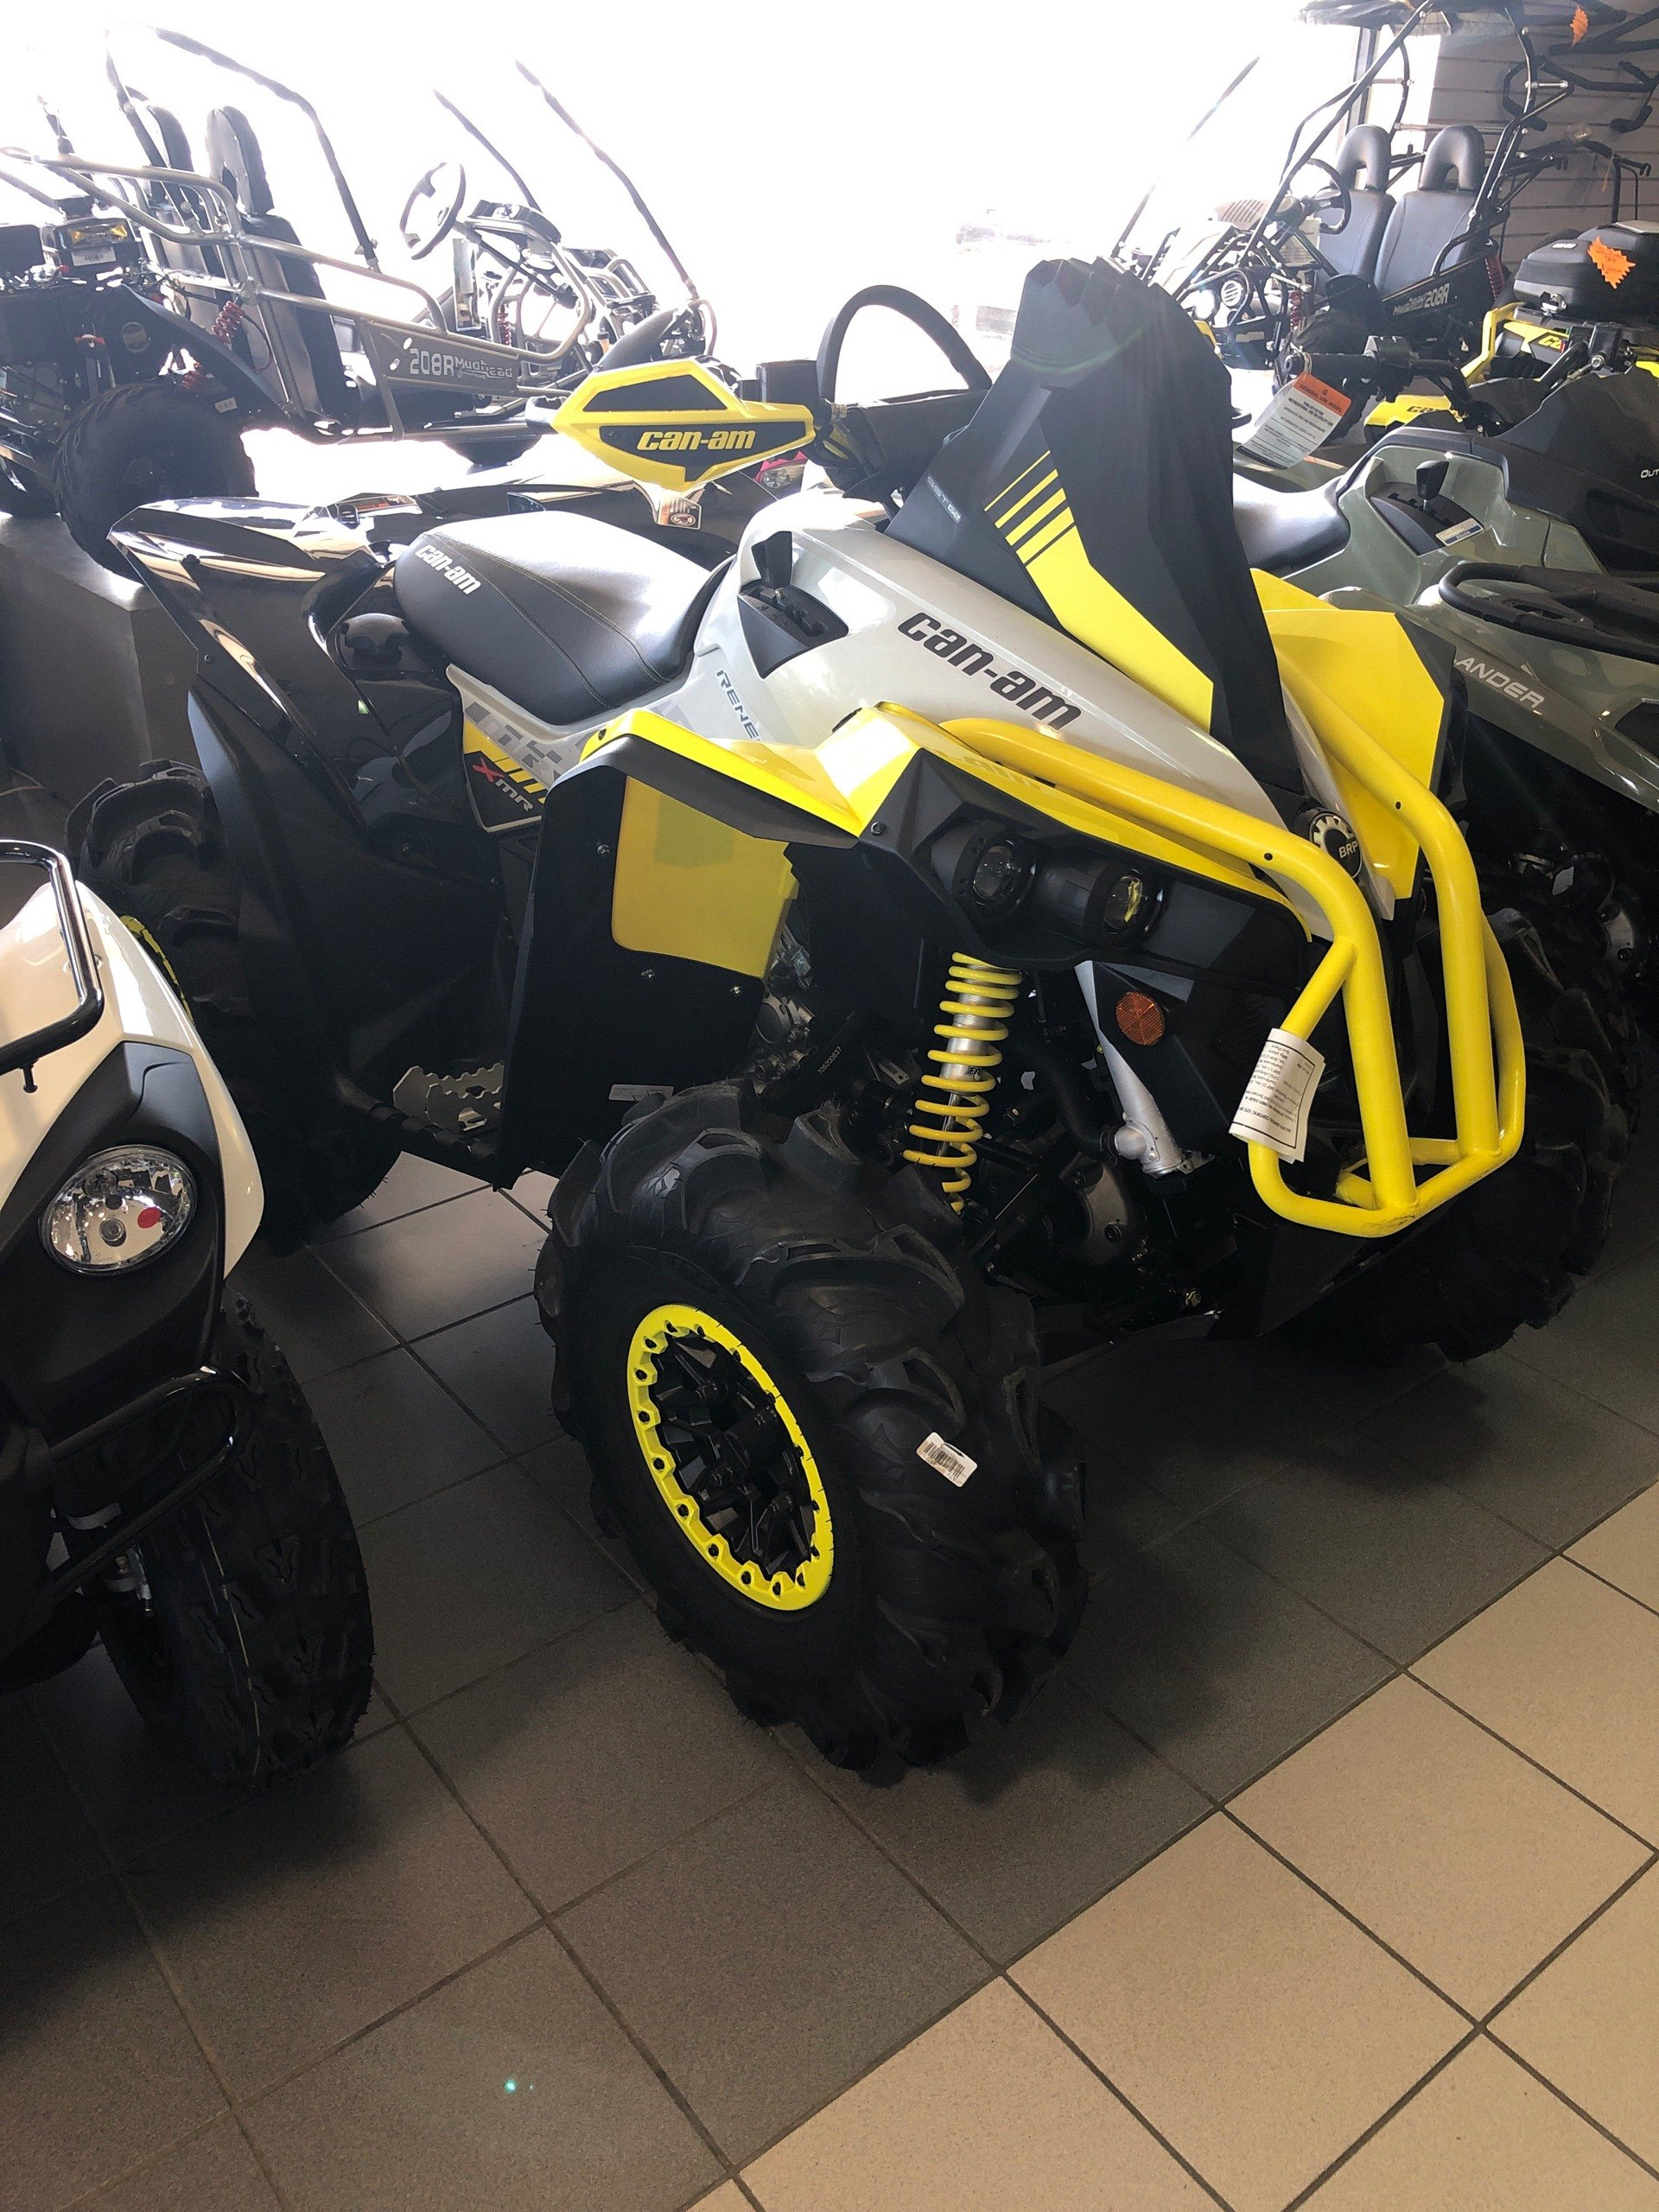 2019 Can-Am Renegade X MR 570 for sale 3188